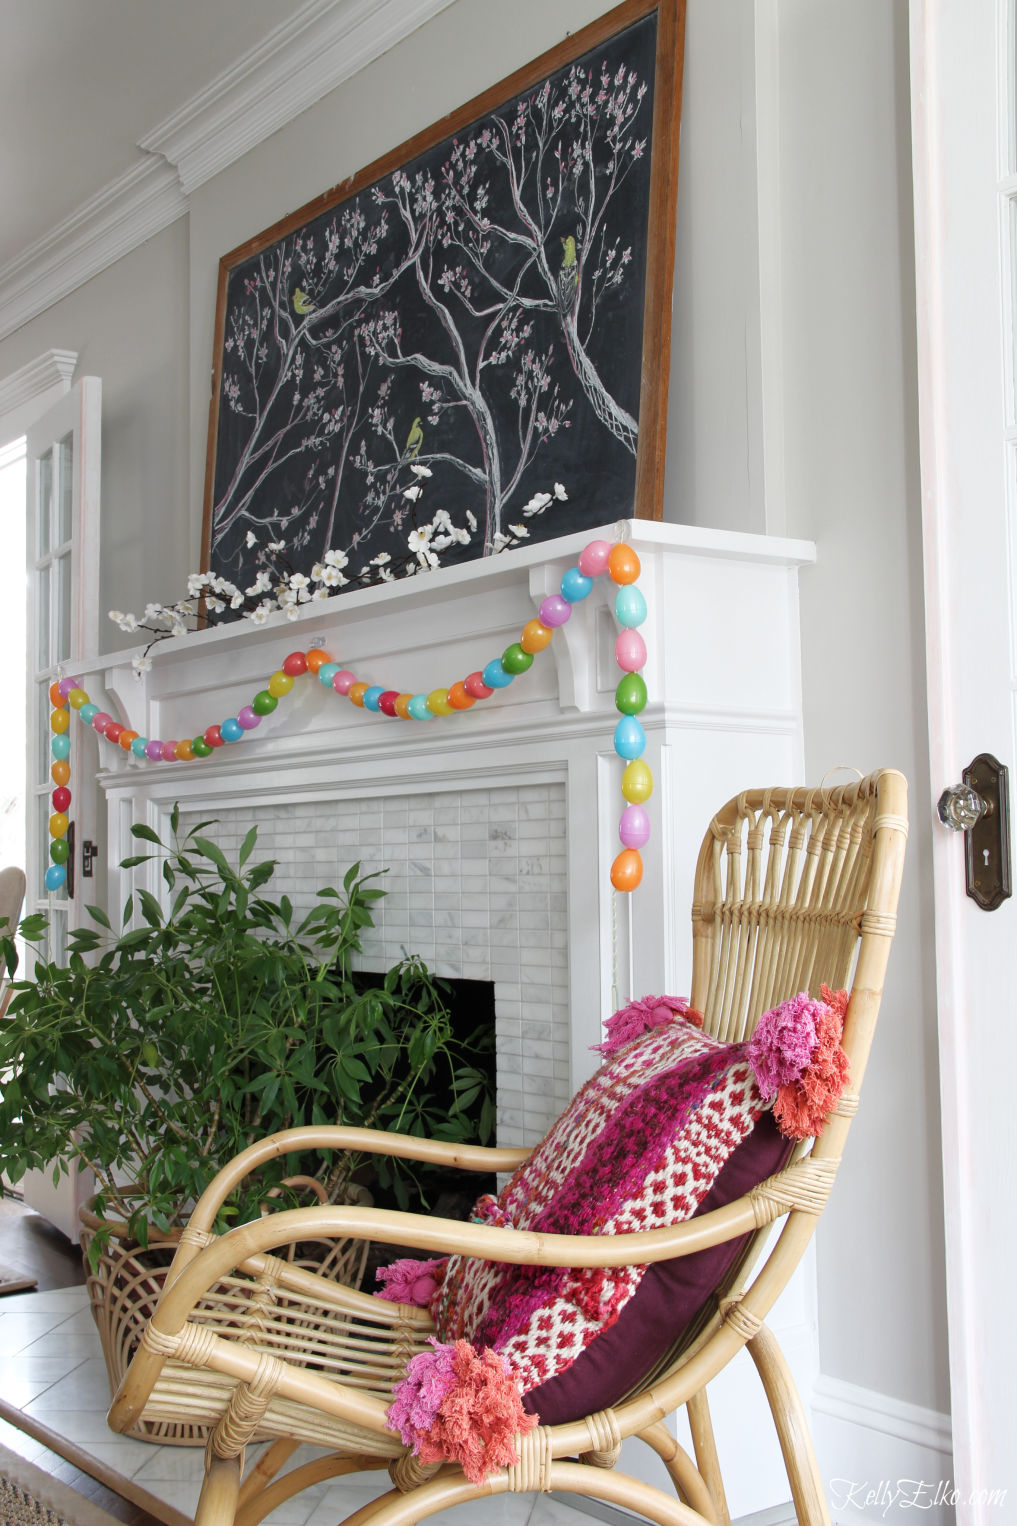 Love this spring mantel with chalkboard art and colorful egg garland kellyelko.com #mantel #mantdeldecor #springdecor #springmantel #garland #springcrafts #easterdecor #eastercrafts #chalkart #bohodecor #houseplants